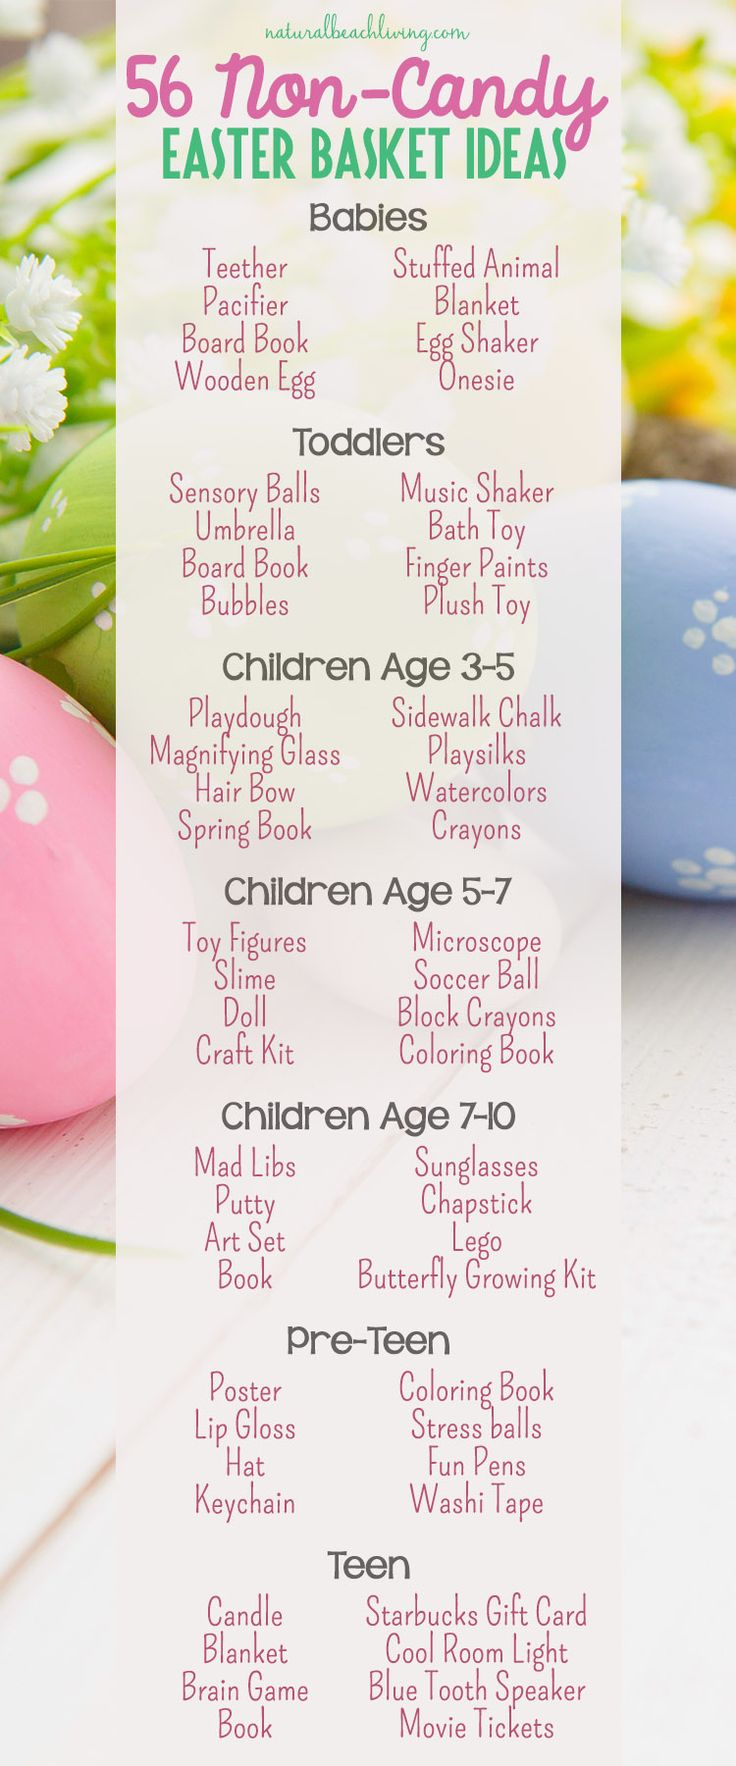 15 best easter images on pinterest easter basket ideas easter 56 non candy easter basket ideas for kids negle Gallery